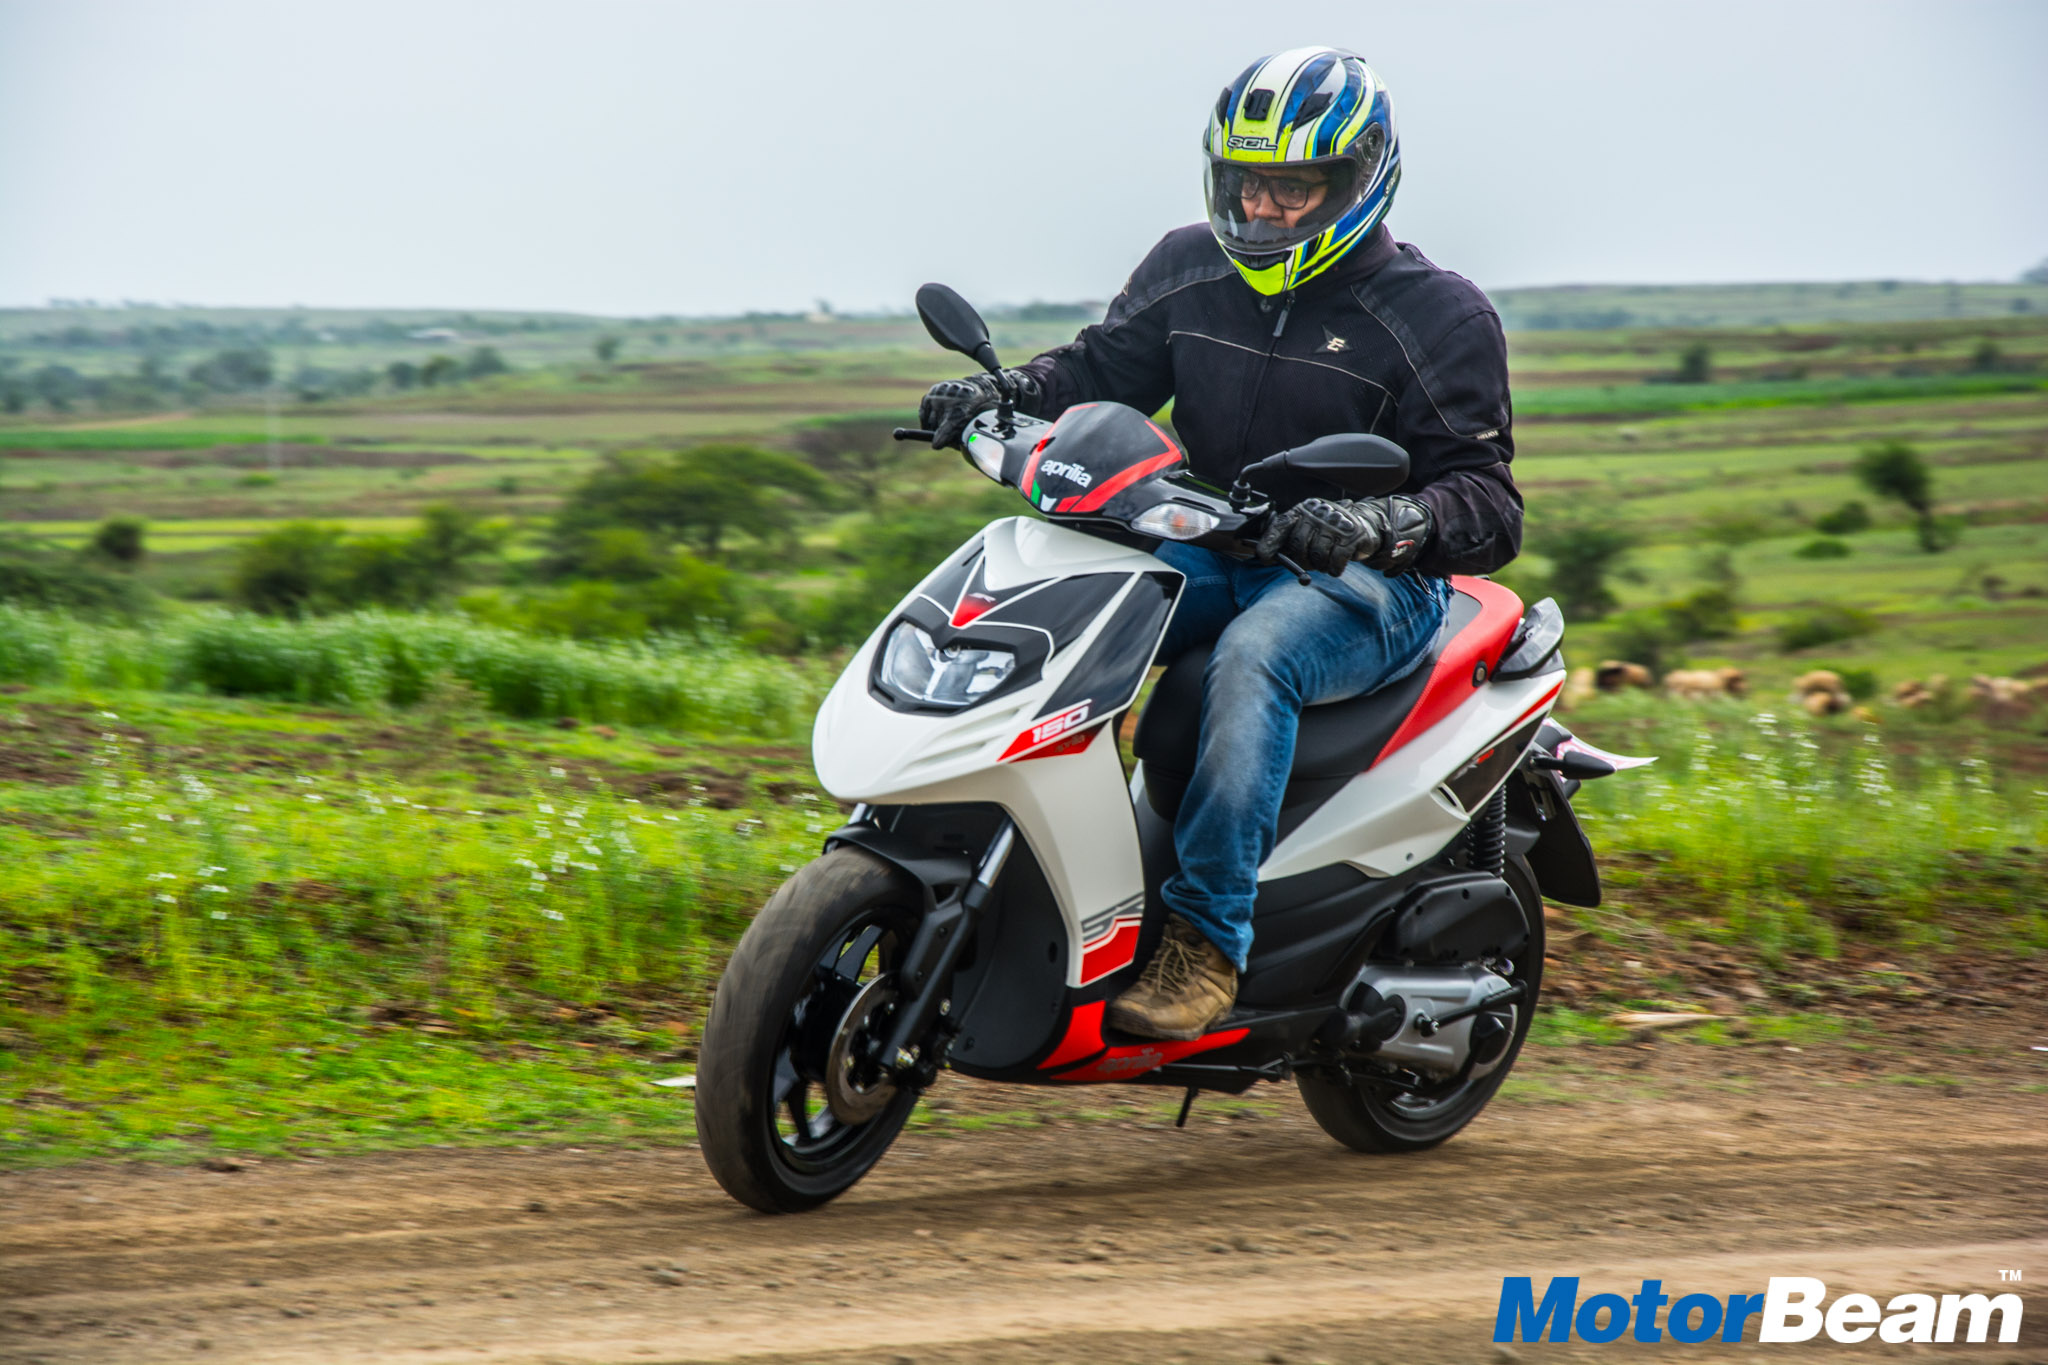 2016 Aprilia SR 150 Test Ride Review